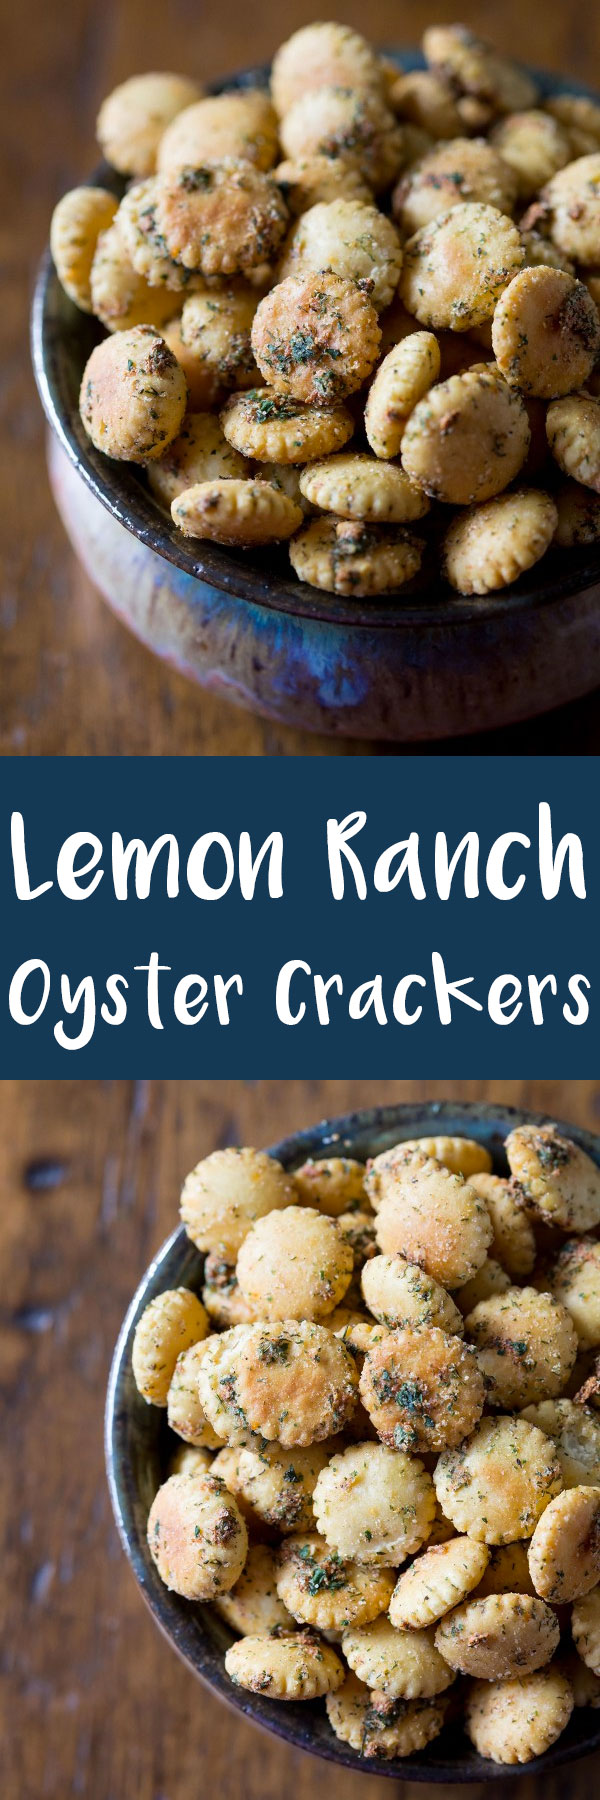 You're going to be snacking on these lemon ranch oyster crackers all day! They've got the perfect amount of spices and they go with everything! I dare you to eat just a handful. #sponsored